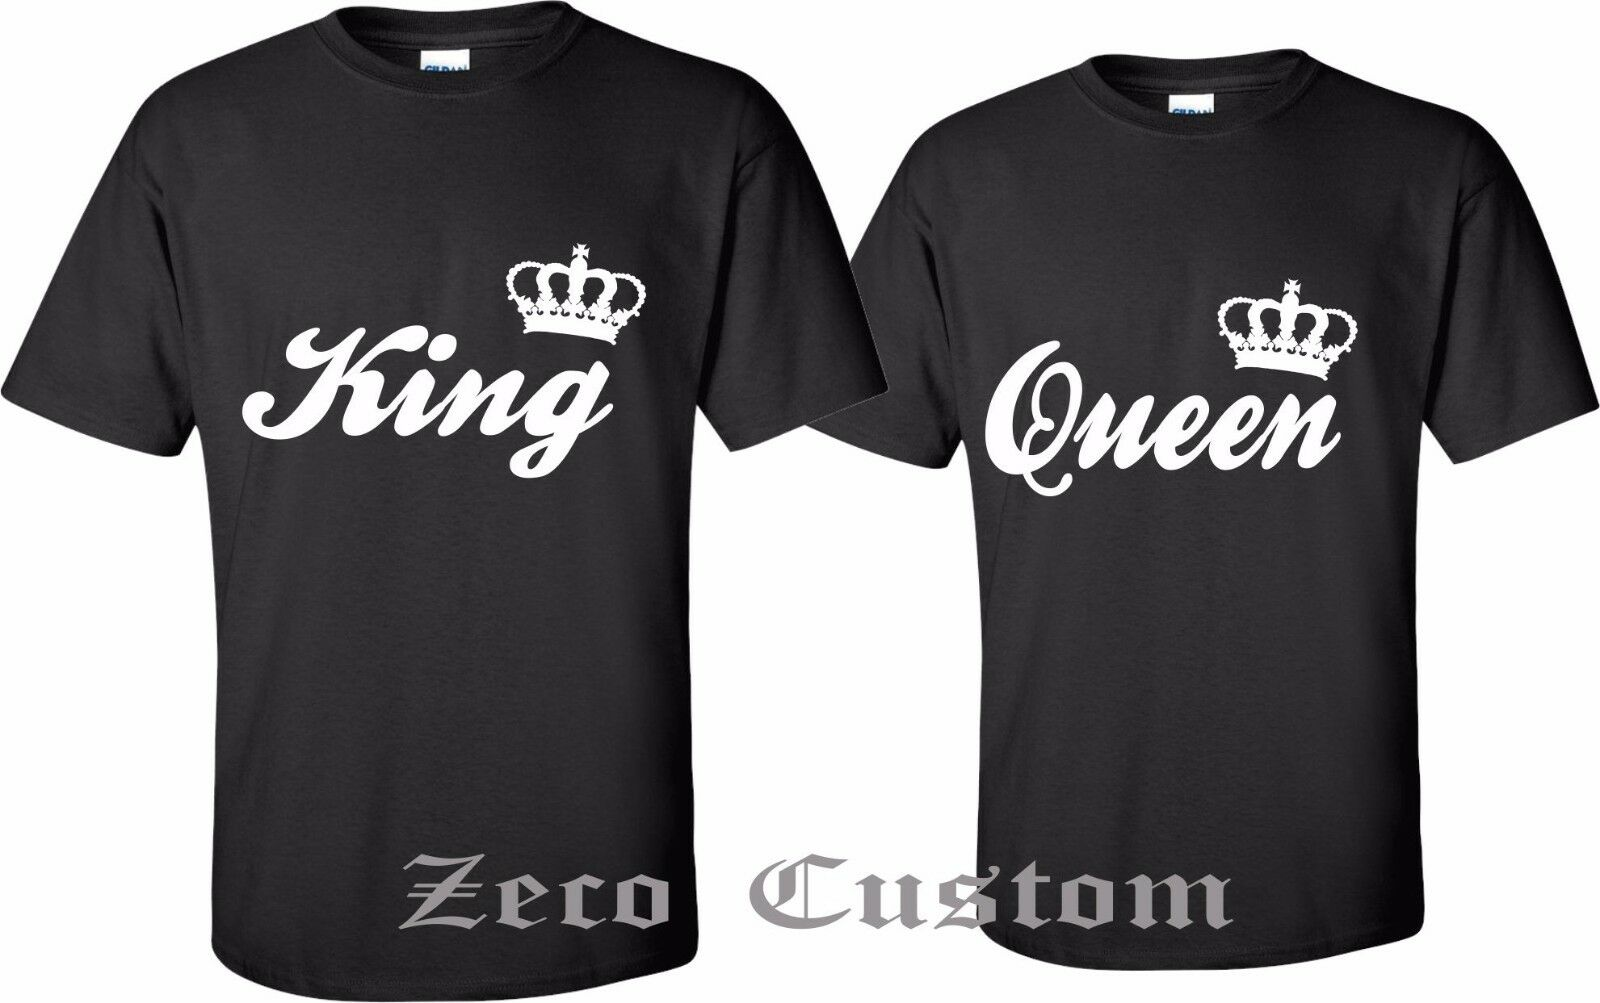 Couple t shirt design white - King And Queen Couple Matching Love T Shirt New Cool Design With White Litters King And Queen Couple Matching Love T Shirt New Cool Design With White